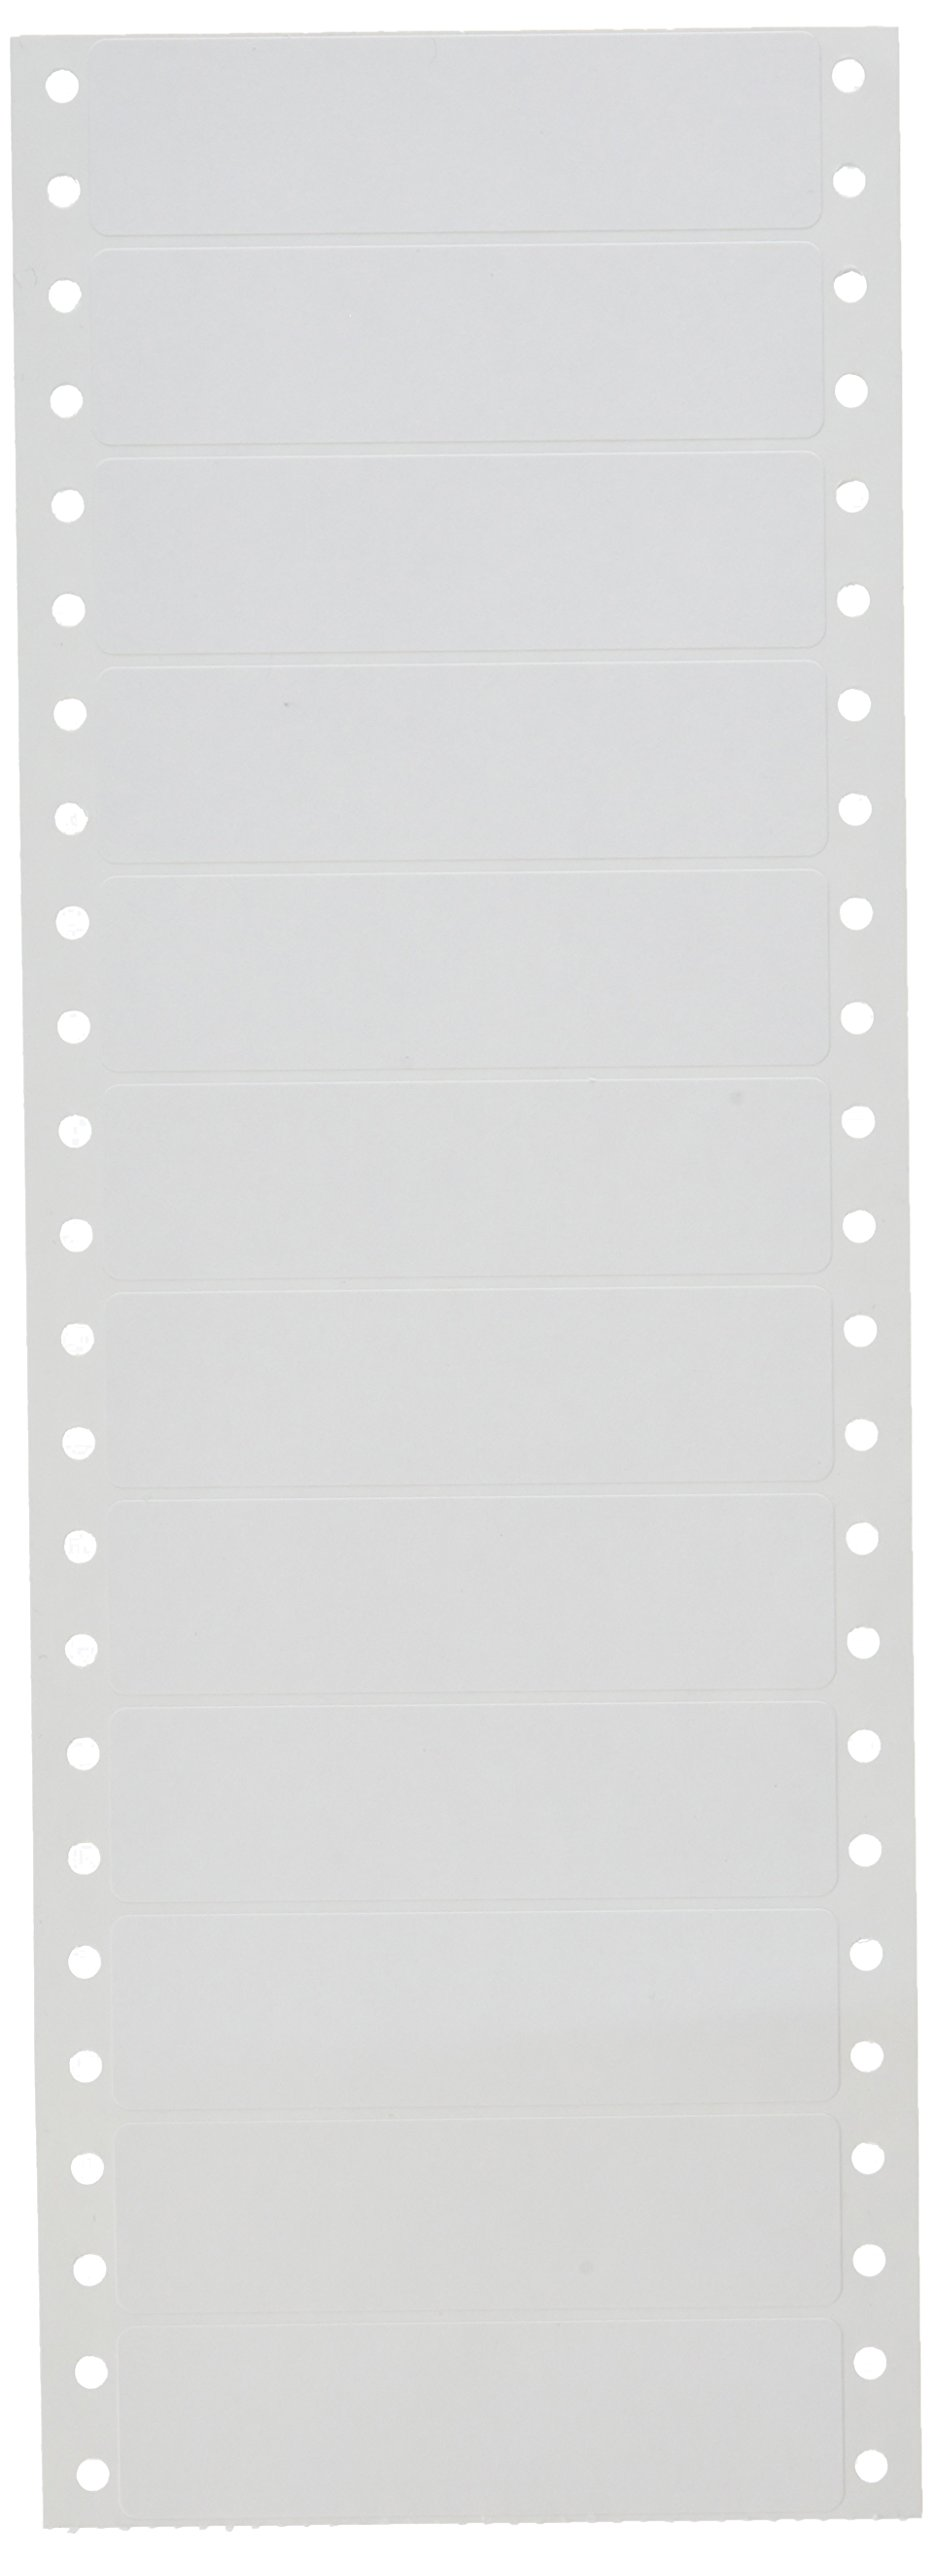 Compulabel Pinfeed Labels Fanfold Permanent Adhesive, 3 1/2'' x 15/16'', White (110654)